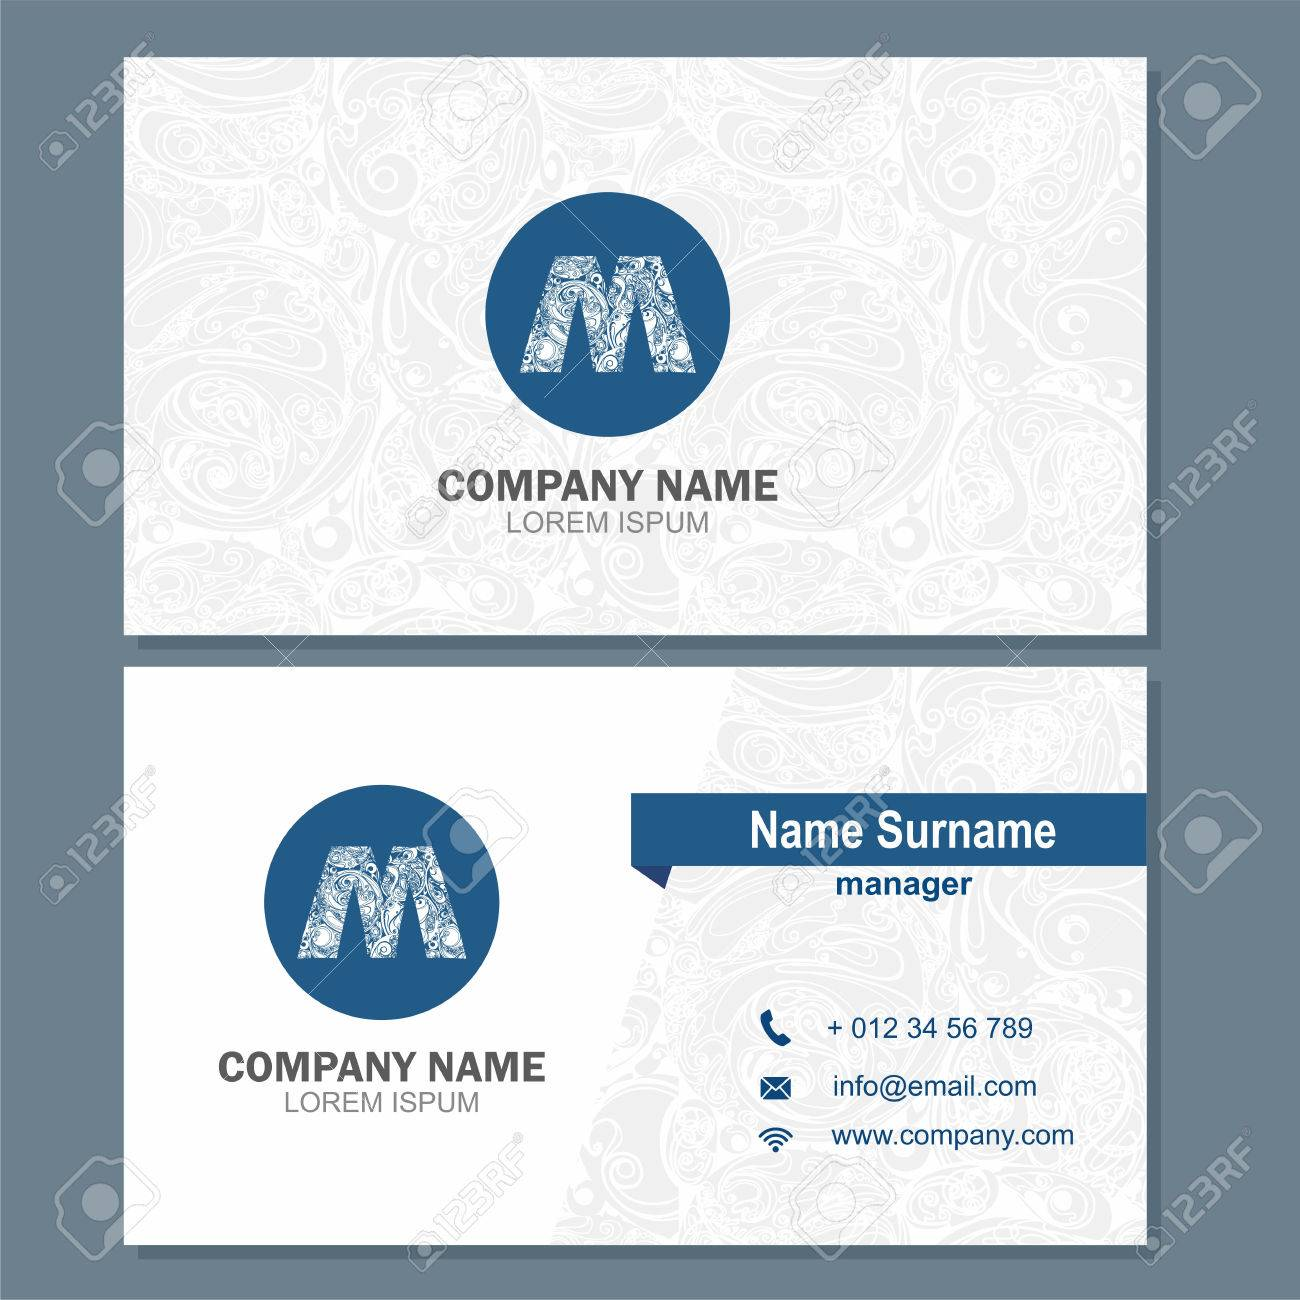 Business Card Or Visiting Card Template With Element Letter A ...